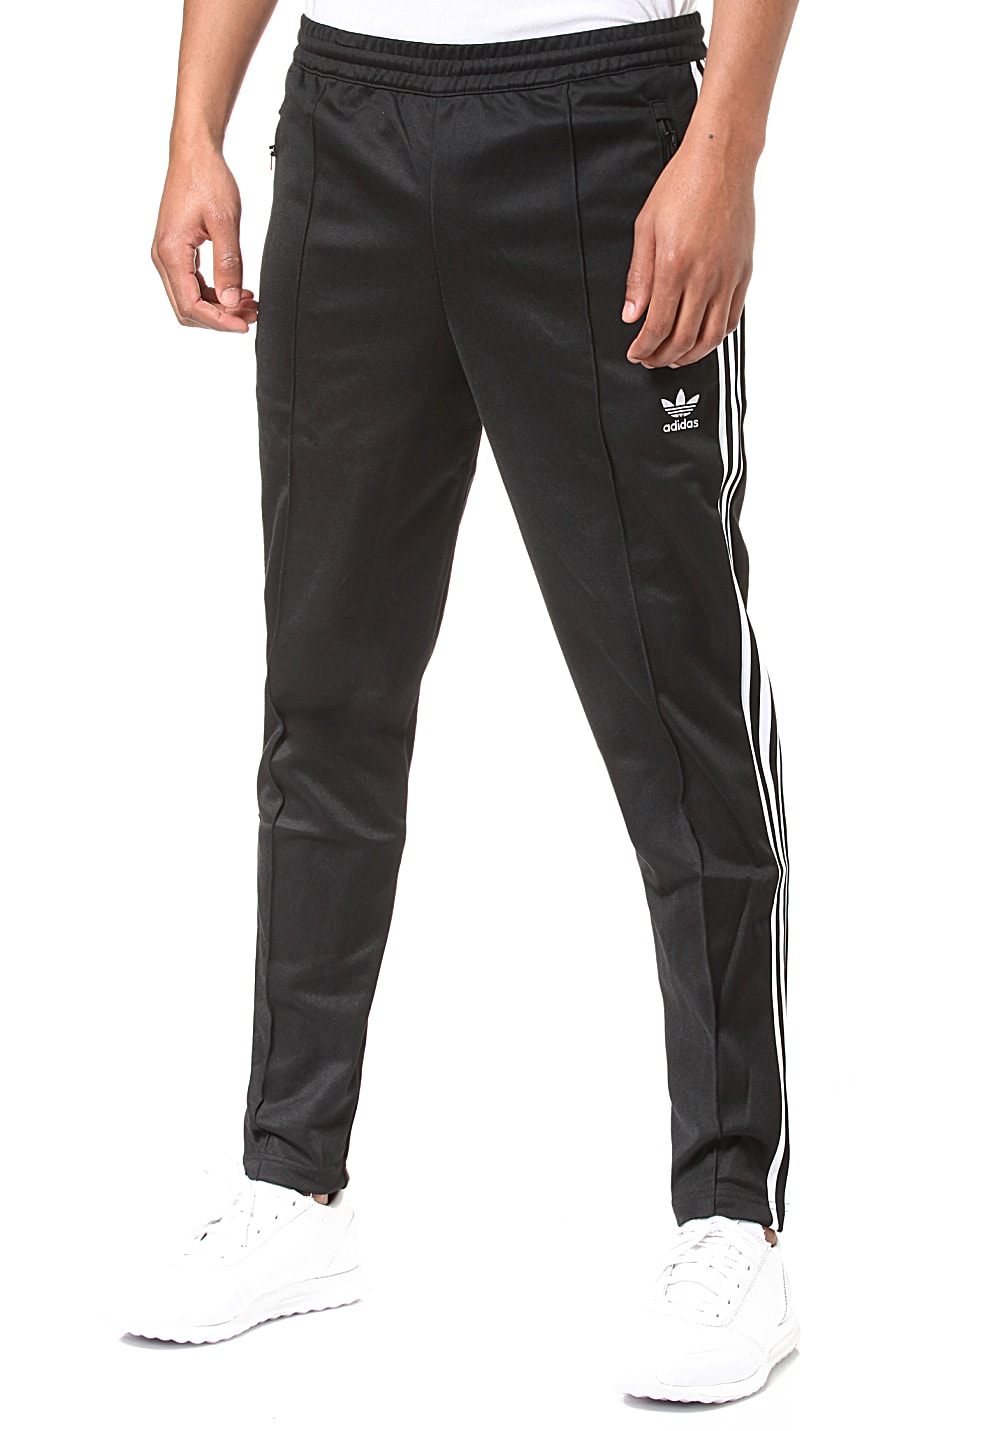 ADIDAS ORIGINALS Beckenbauer Trainingsbroek voor Heren Zwart